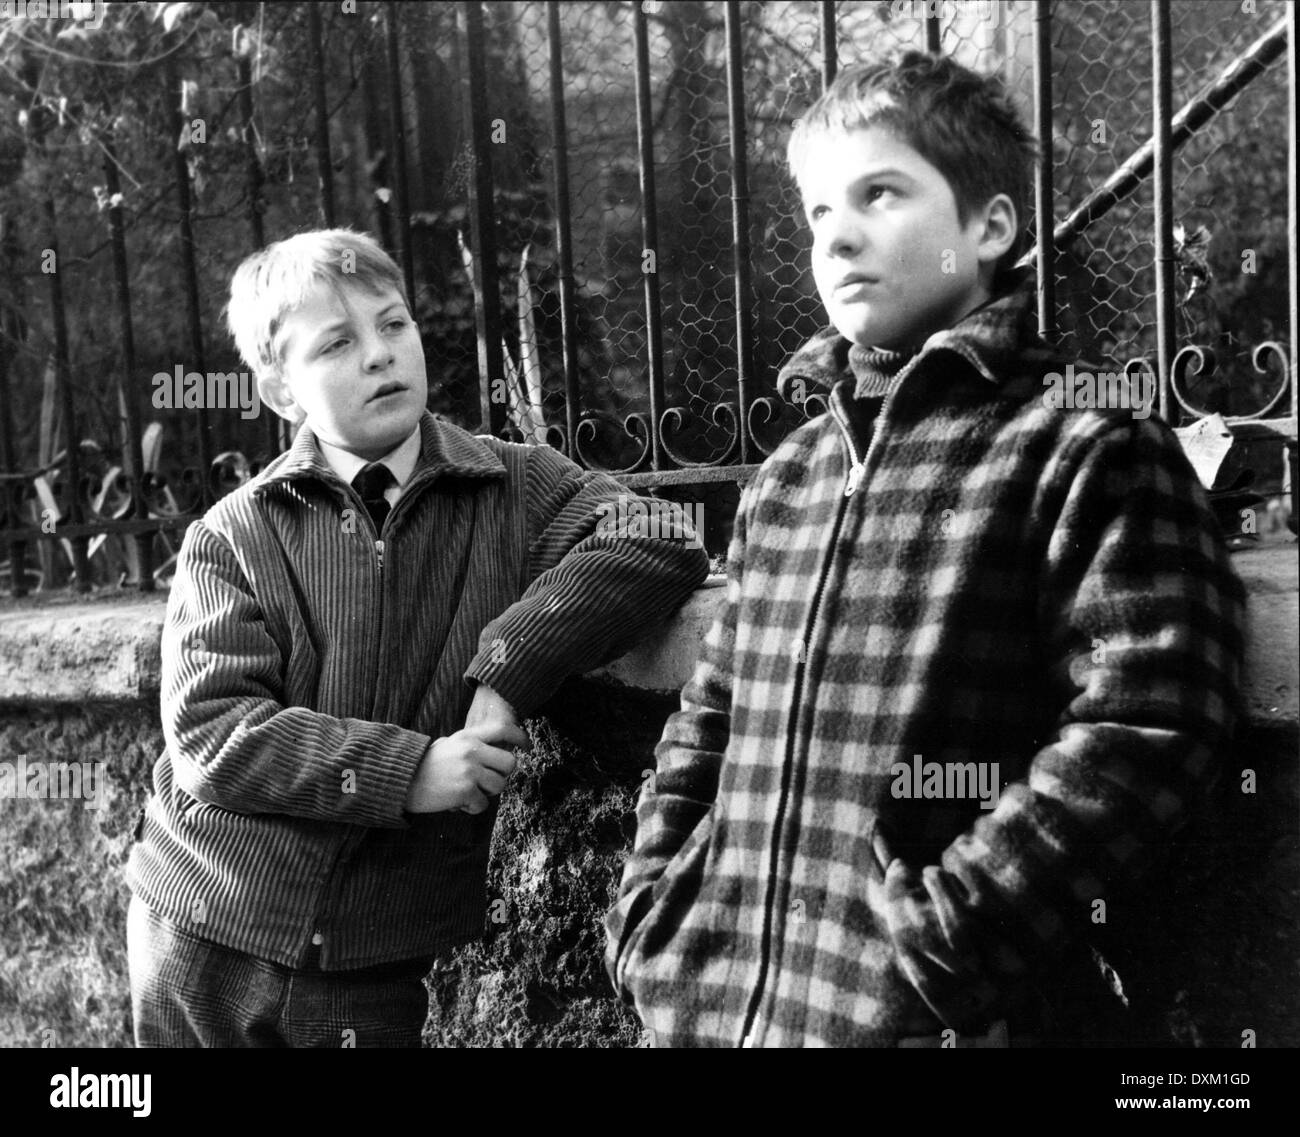 400 Blows Film Stock Photos & 400 Blows Film Stock Images